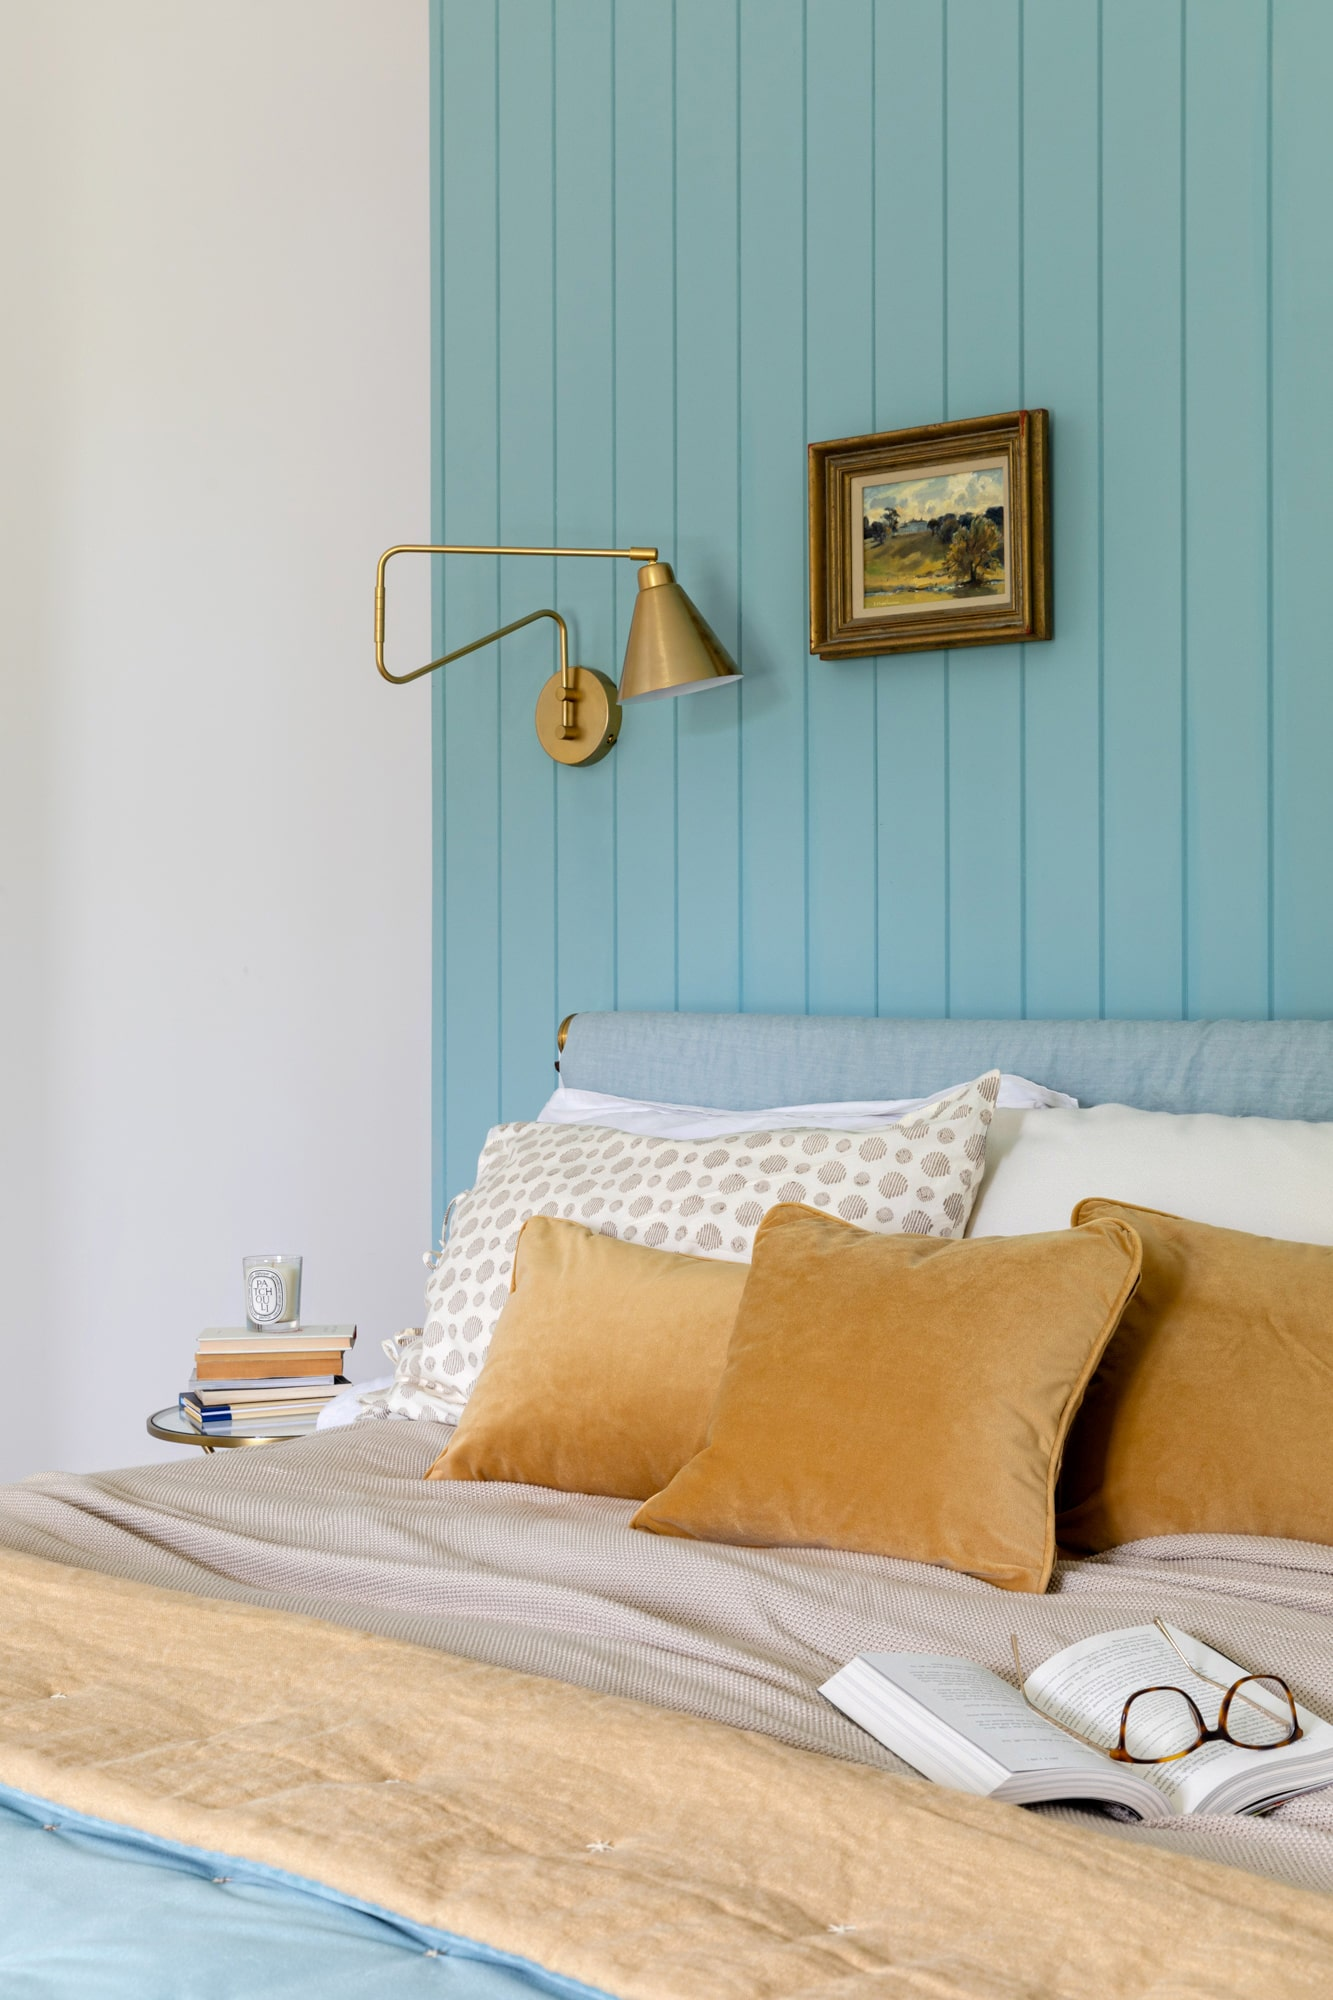 Interior photo: bedroom in a country house with blue wooden paneling, detail of a bed bed, gold hanging light, small painting and yellow pillows